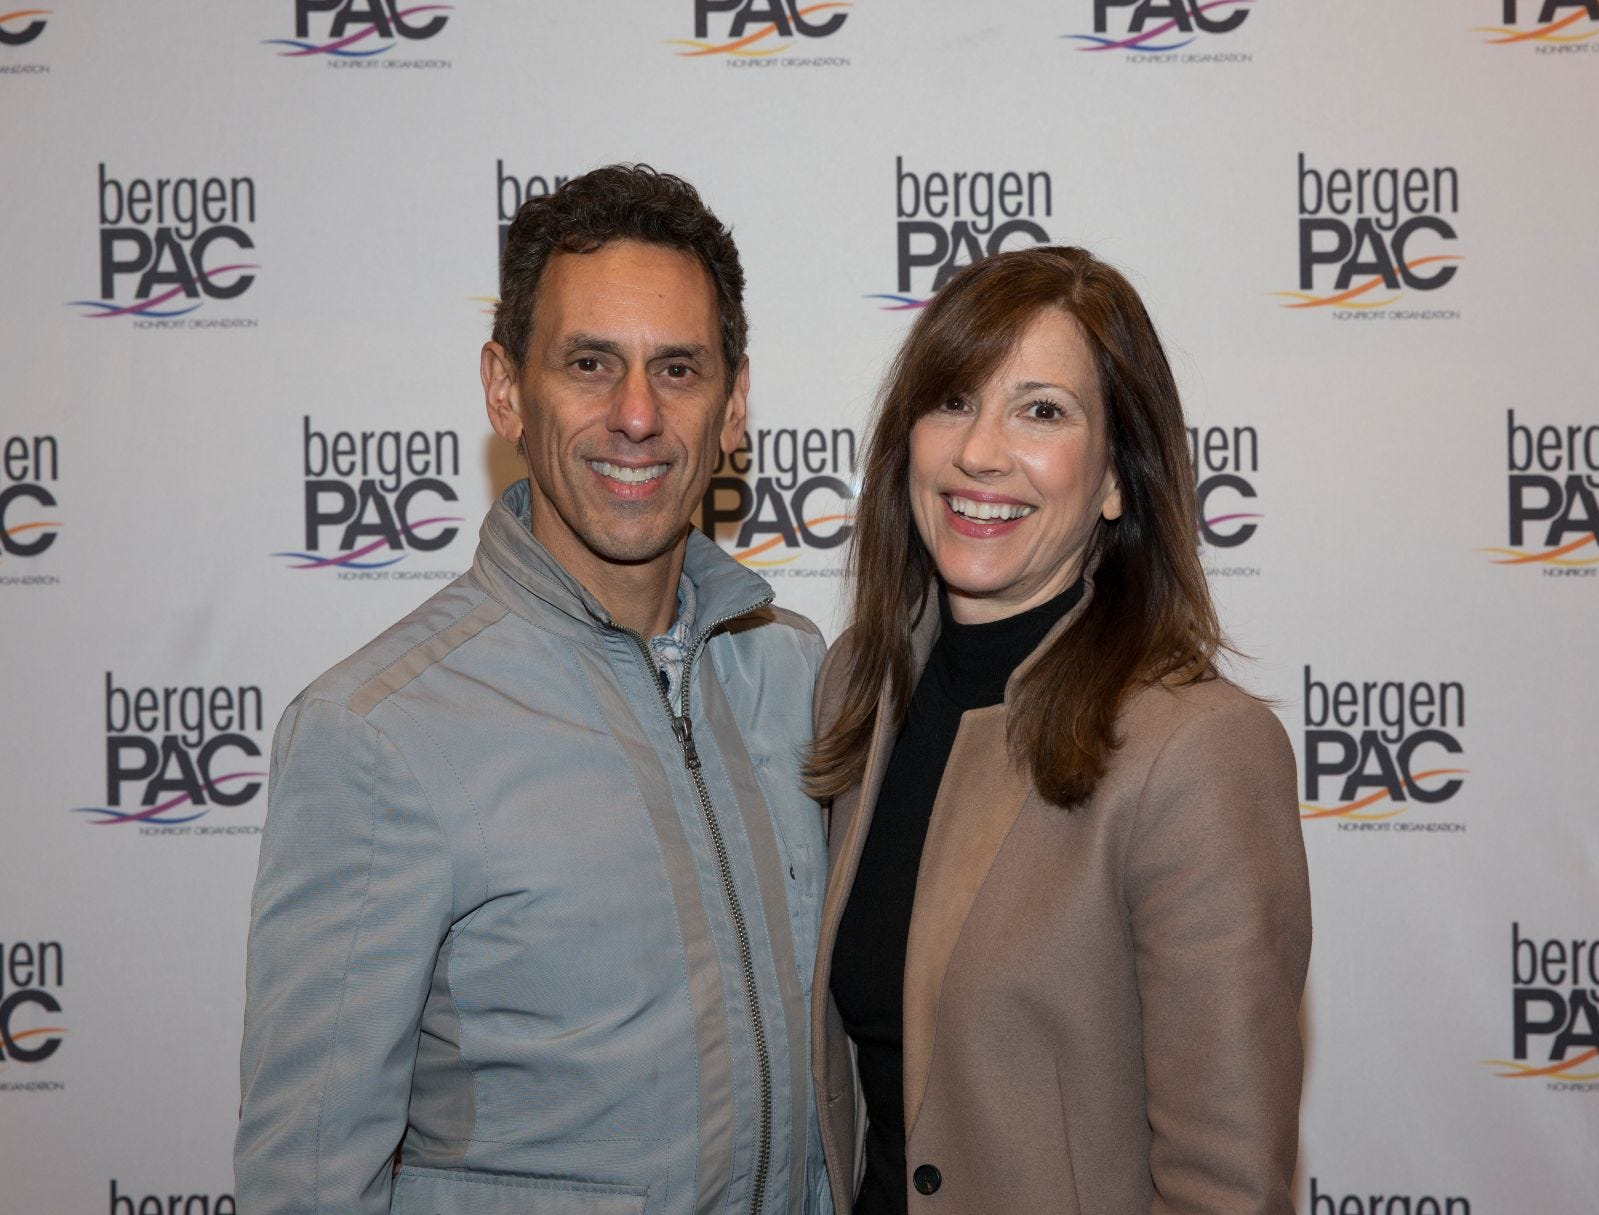 Matt and Susan Ross. BergenPAC held its annual fall gala featuring John Fogerty in Englewood. This year's honoree was Fernando Garip, from Wilmington Trust and M&T Bank. 11/08/2018